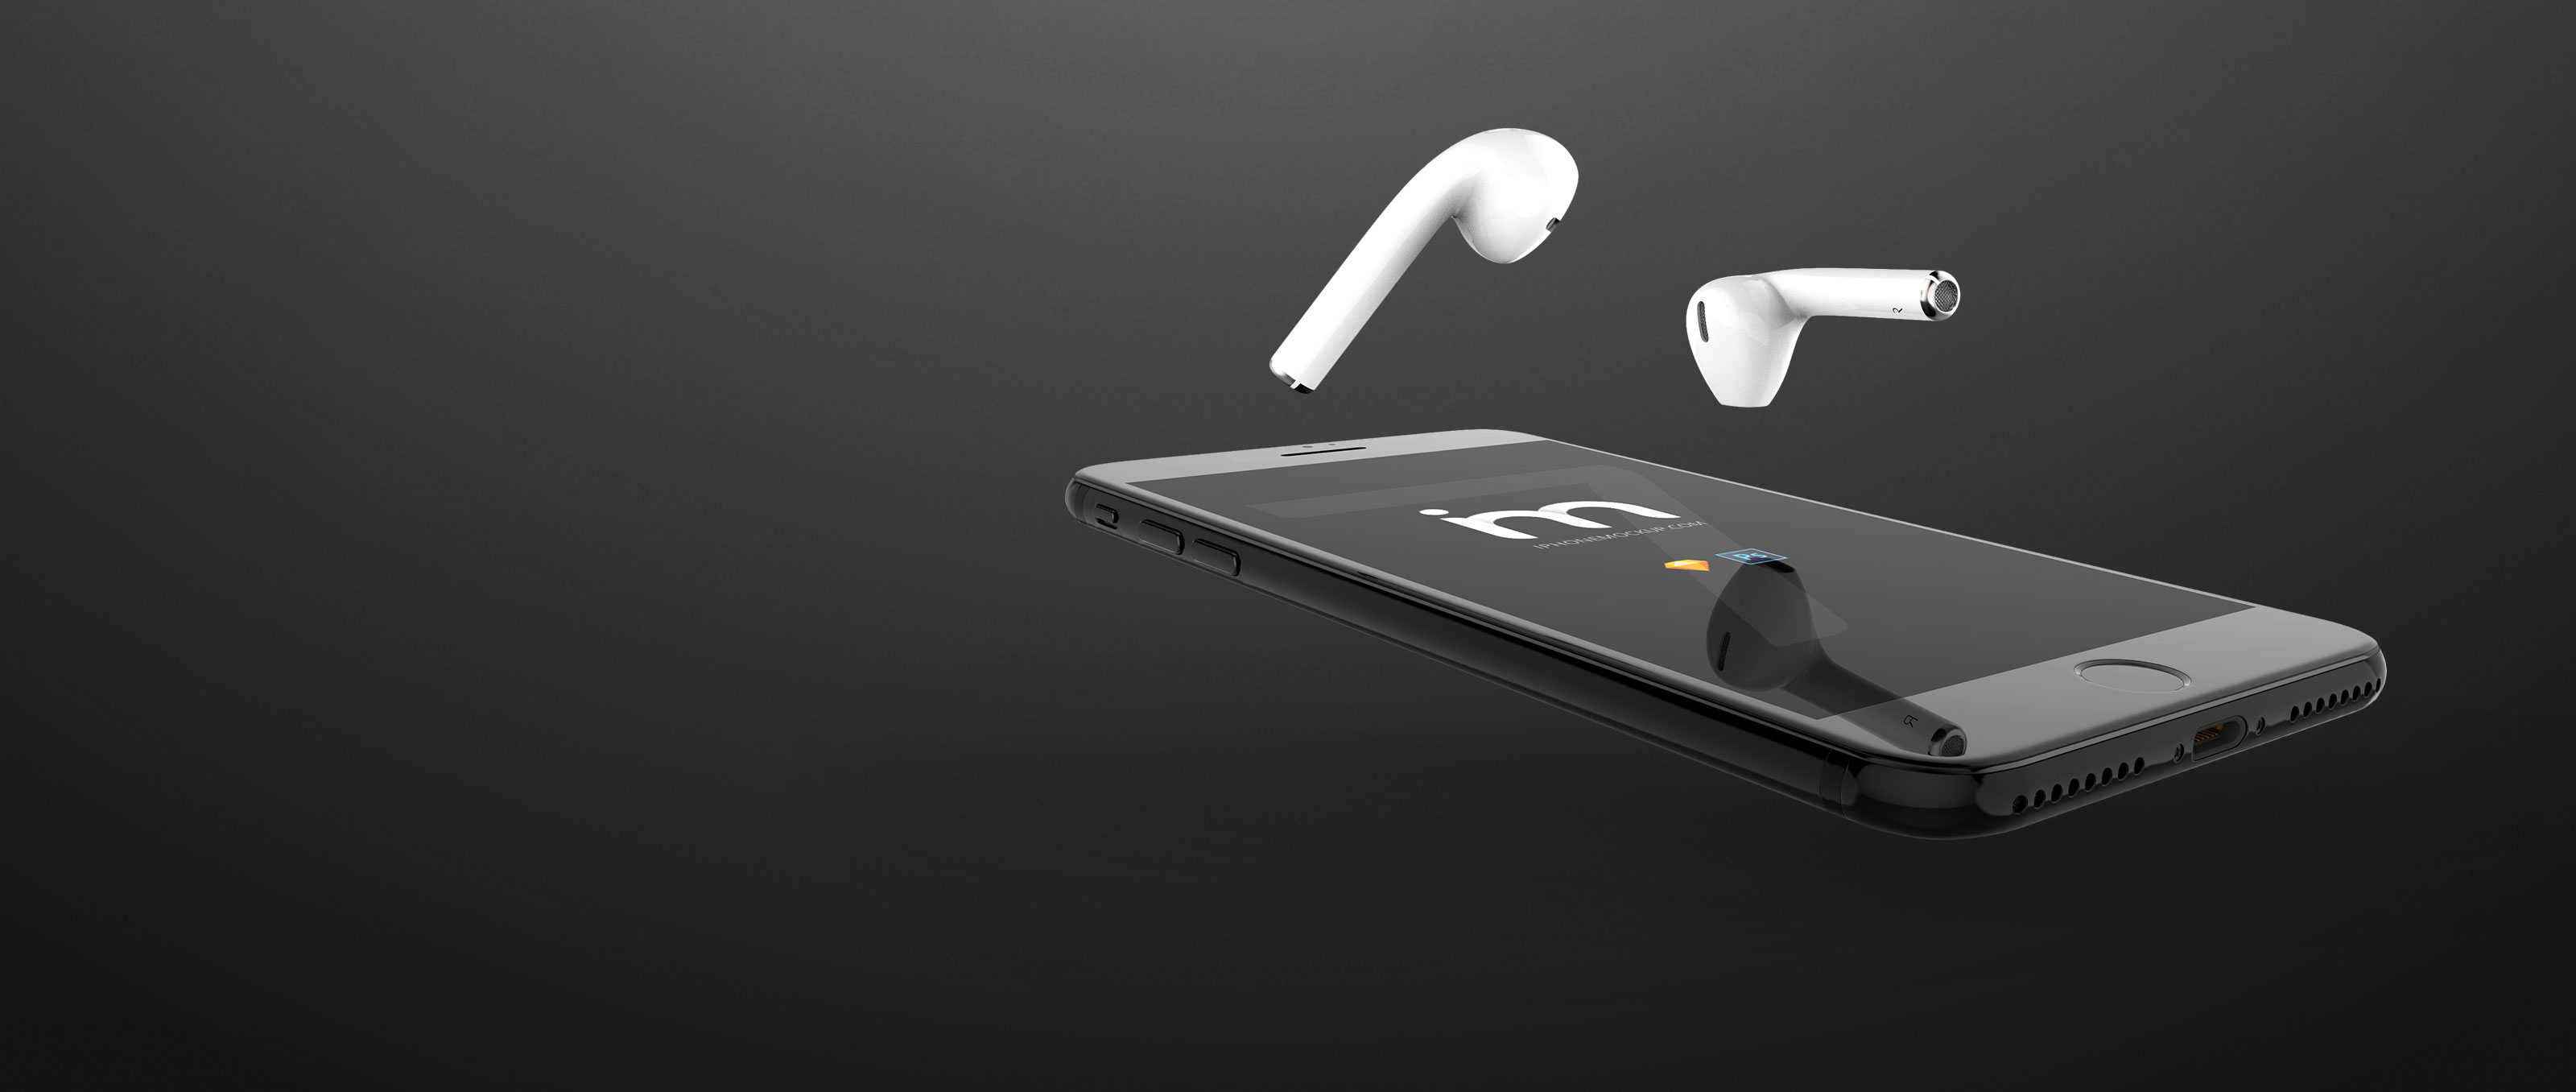 iPhone-7-Earpods-Mockup-Dark